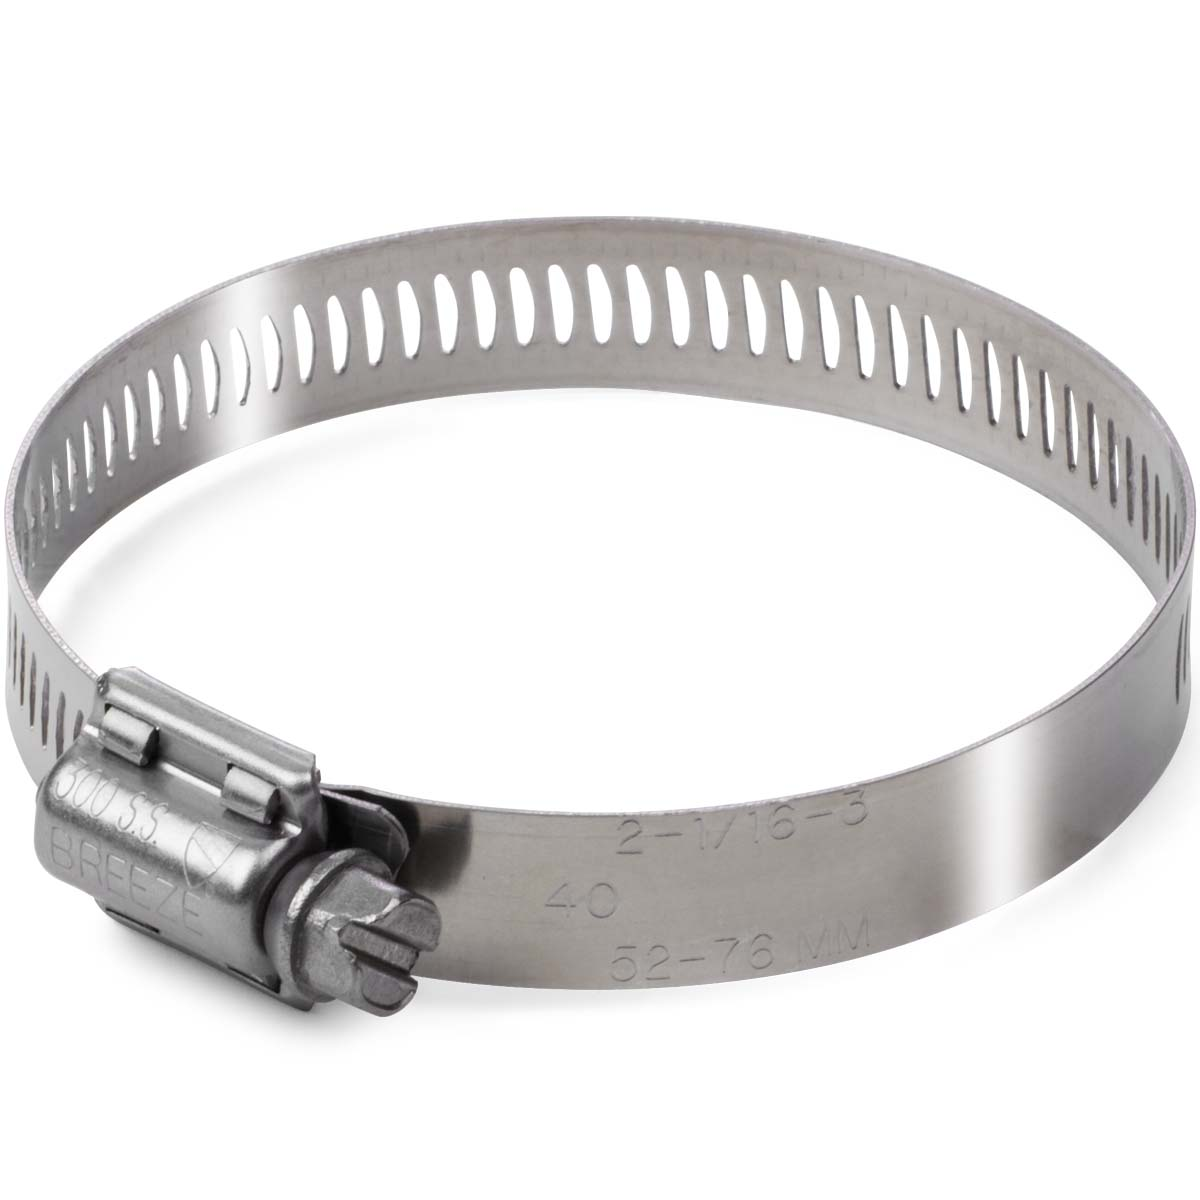 #16 Heavy-Duty Stainless Steel Hose Cl&  sc 1 st  Kimball Midwest : large stainless steel hose clamps - www.happyfamilyinstitute.com